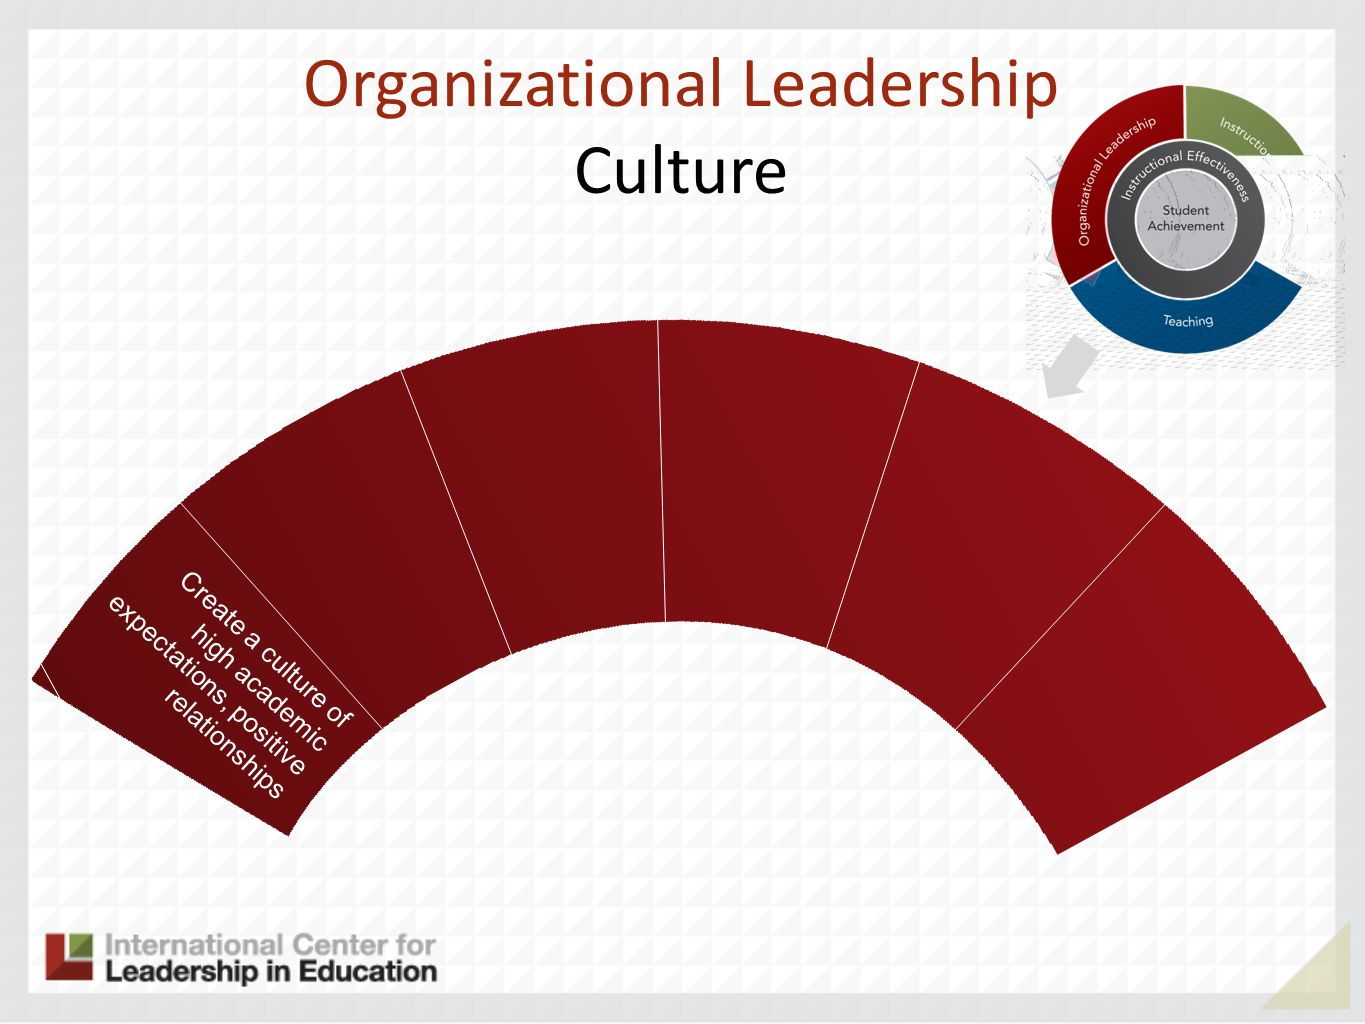 Organizational Leadership Culture Create a culture of high academic expectations, positive relationships